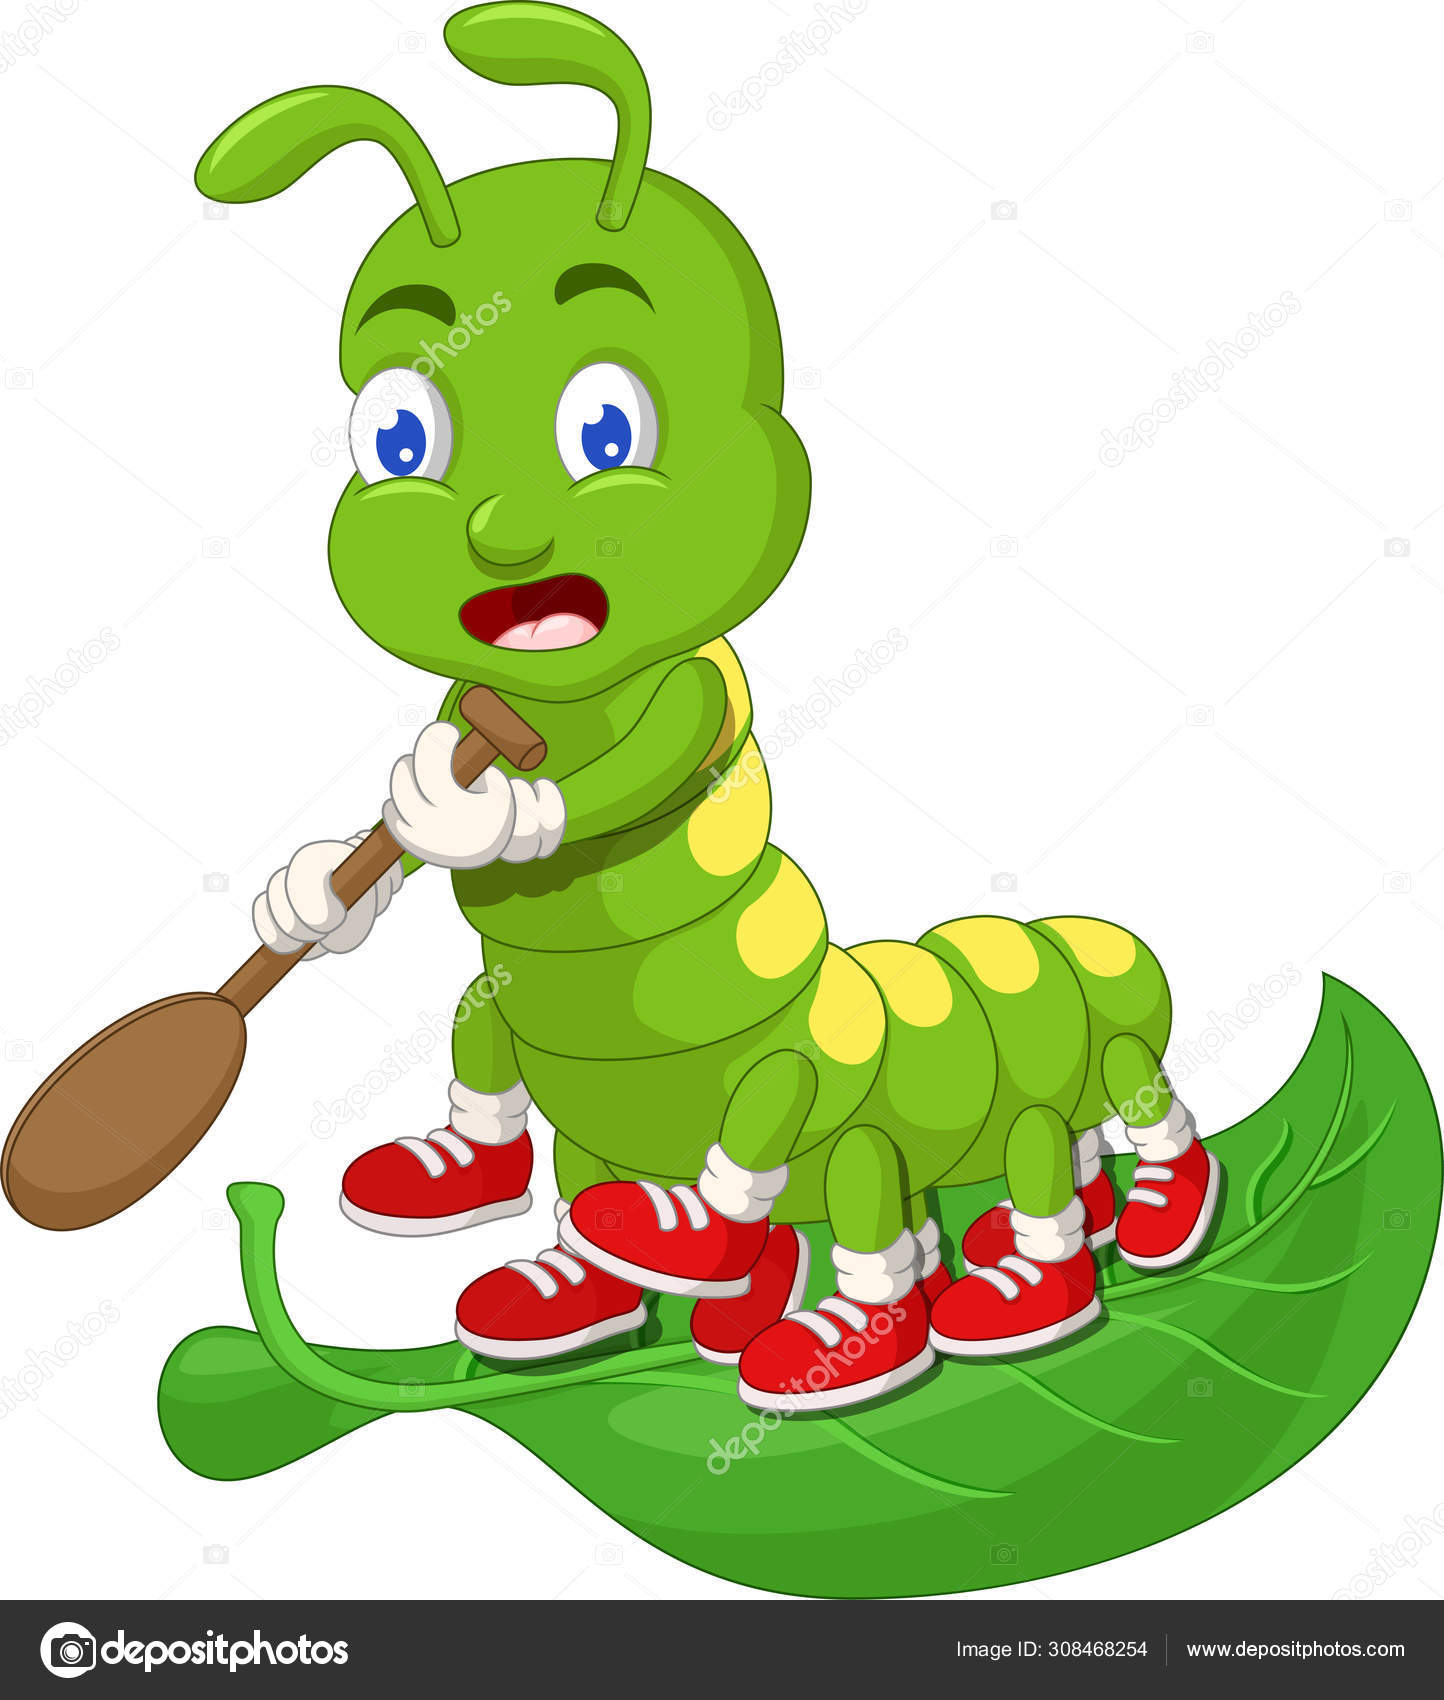 Funny Green Caterpillar Wearing Red Shoes Green Leaf Cartoon Your